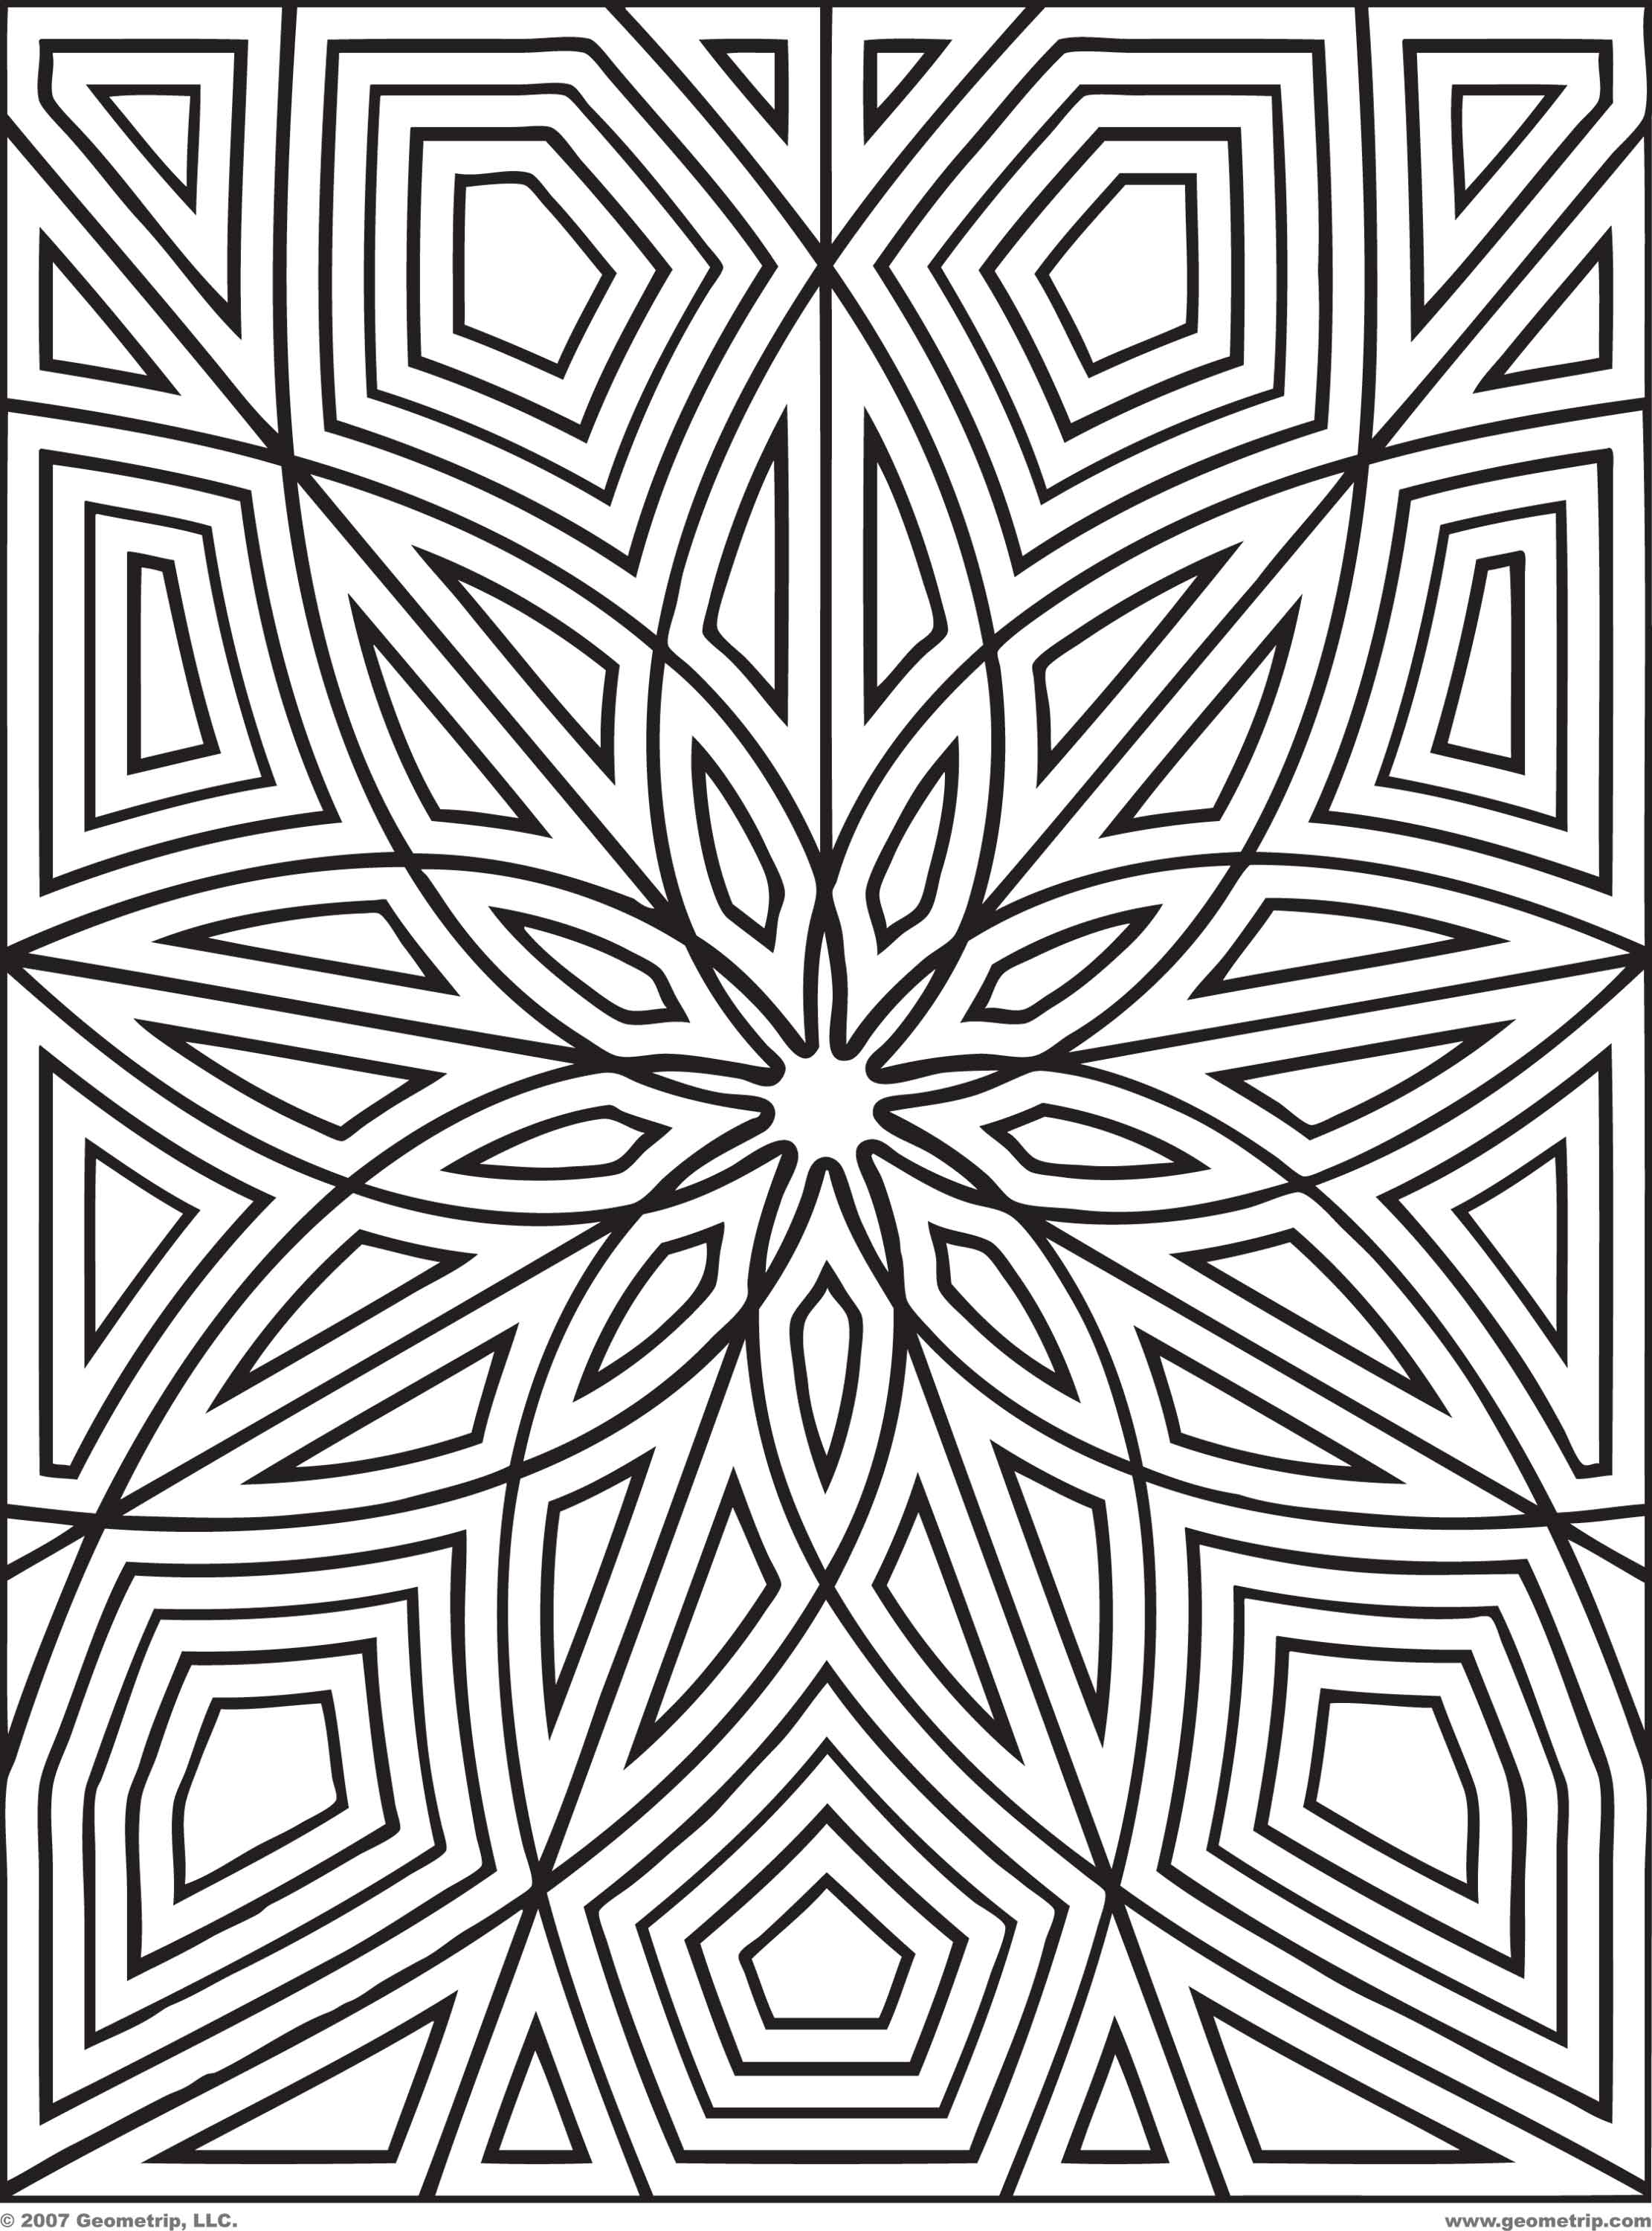 printable pattern coloring pages - High Quality Coloring Pages